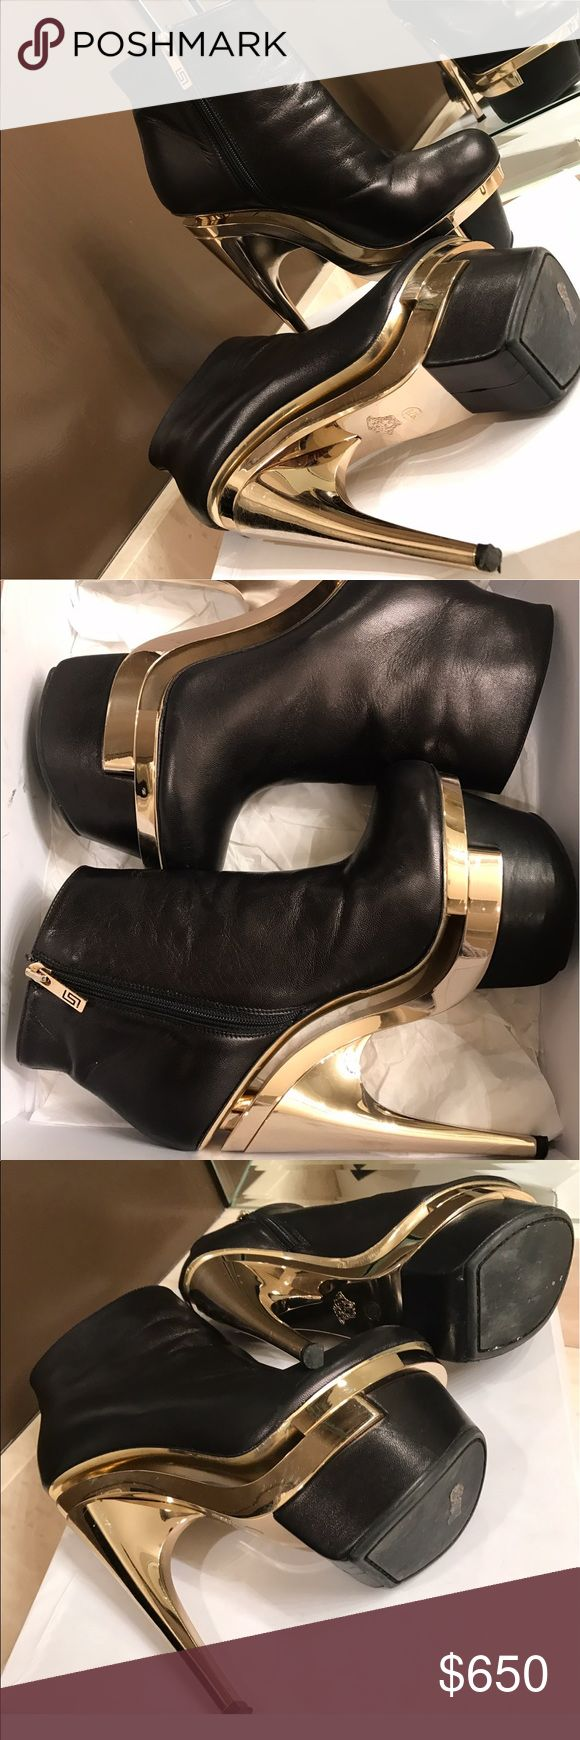 Authentic Versace Platform Booties Authentic Versace Bootie  Worn marks underneath  Worn insole - Worn leather (shown in photos)  Still in very good condition Comes with original box, dust bag  & new heel tips  Size 37/5 Versace Shoes Platforms